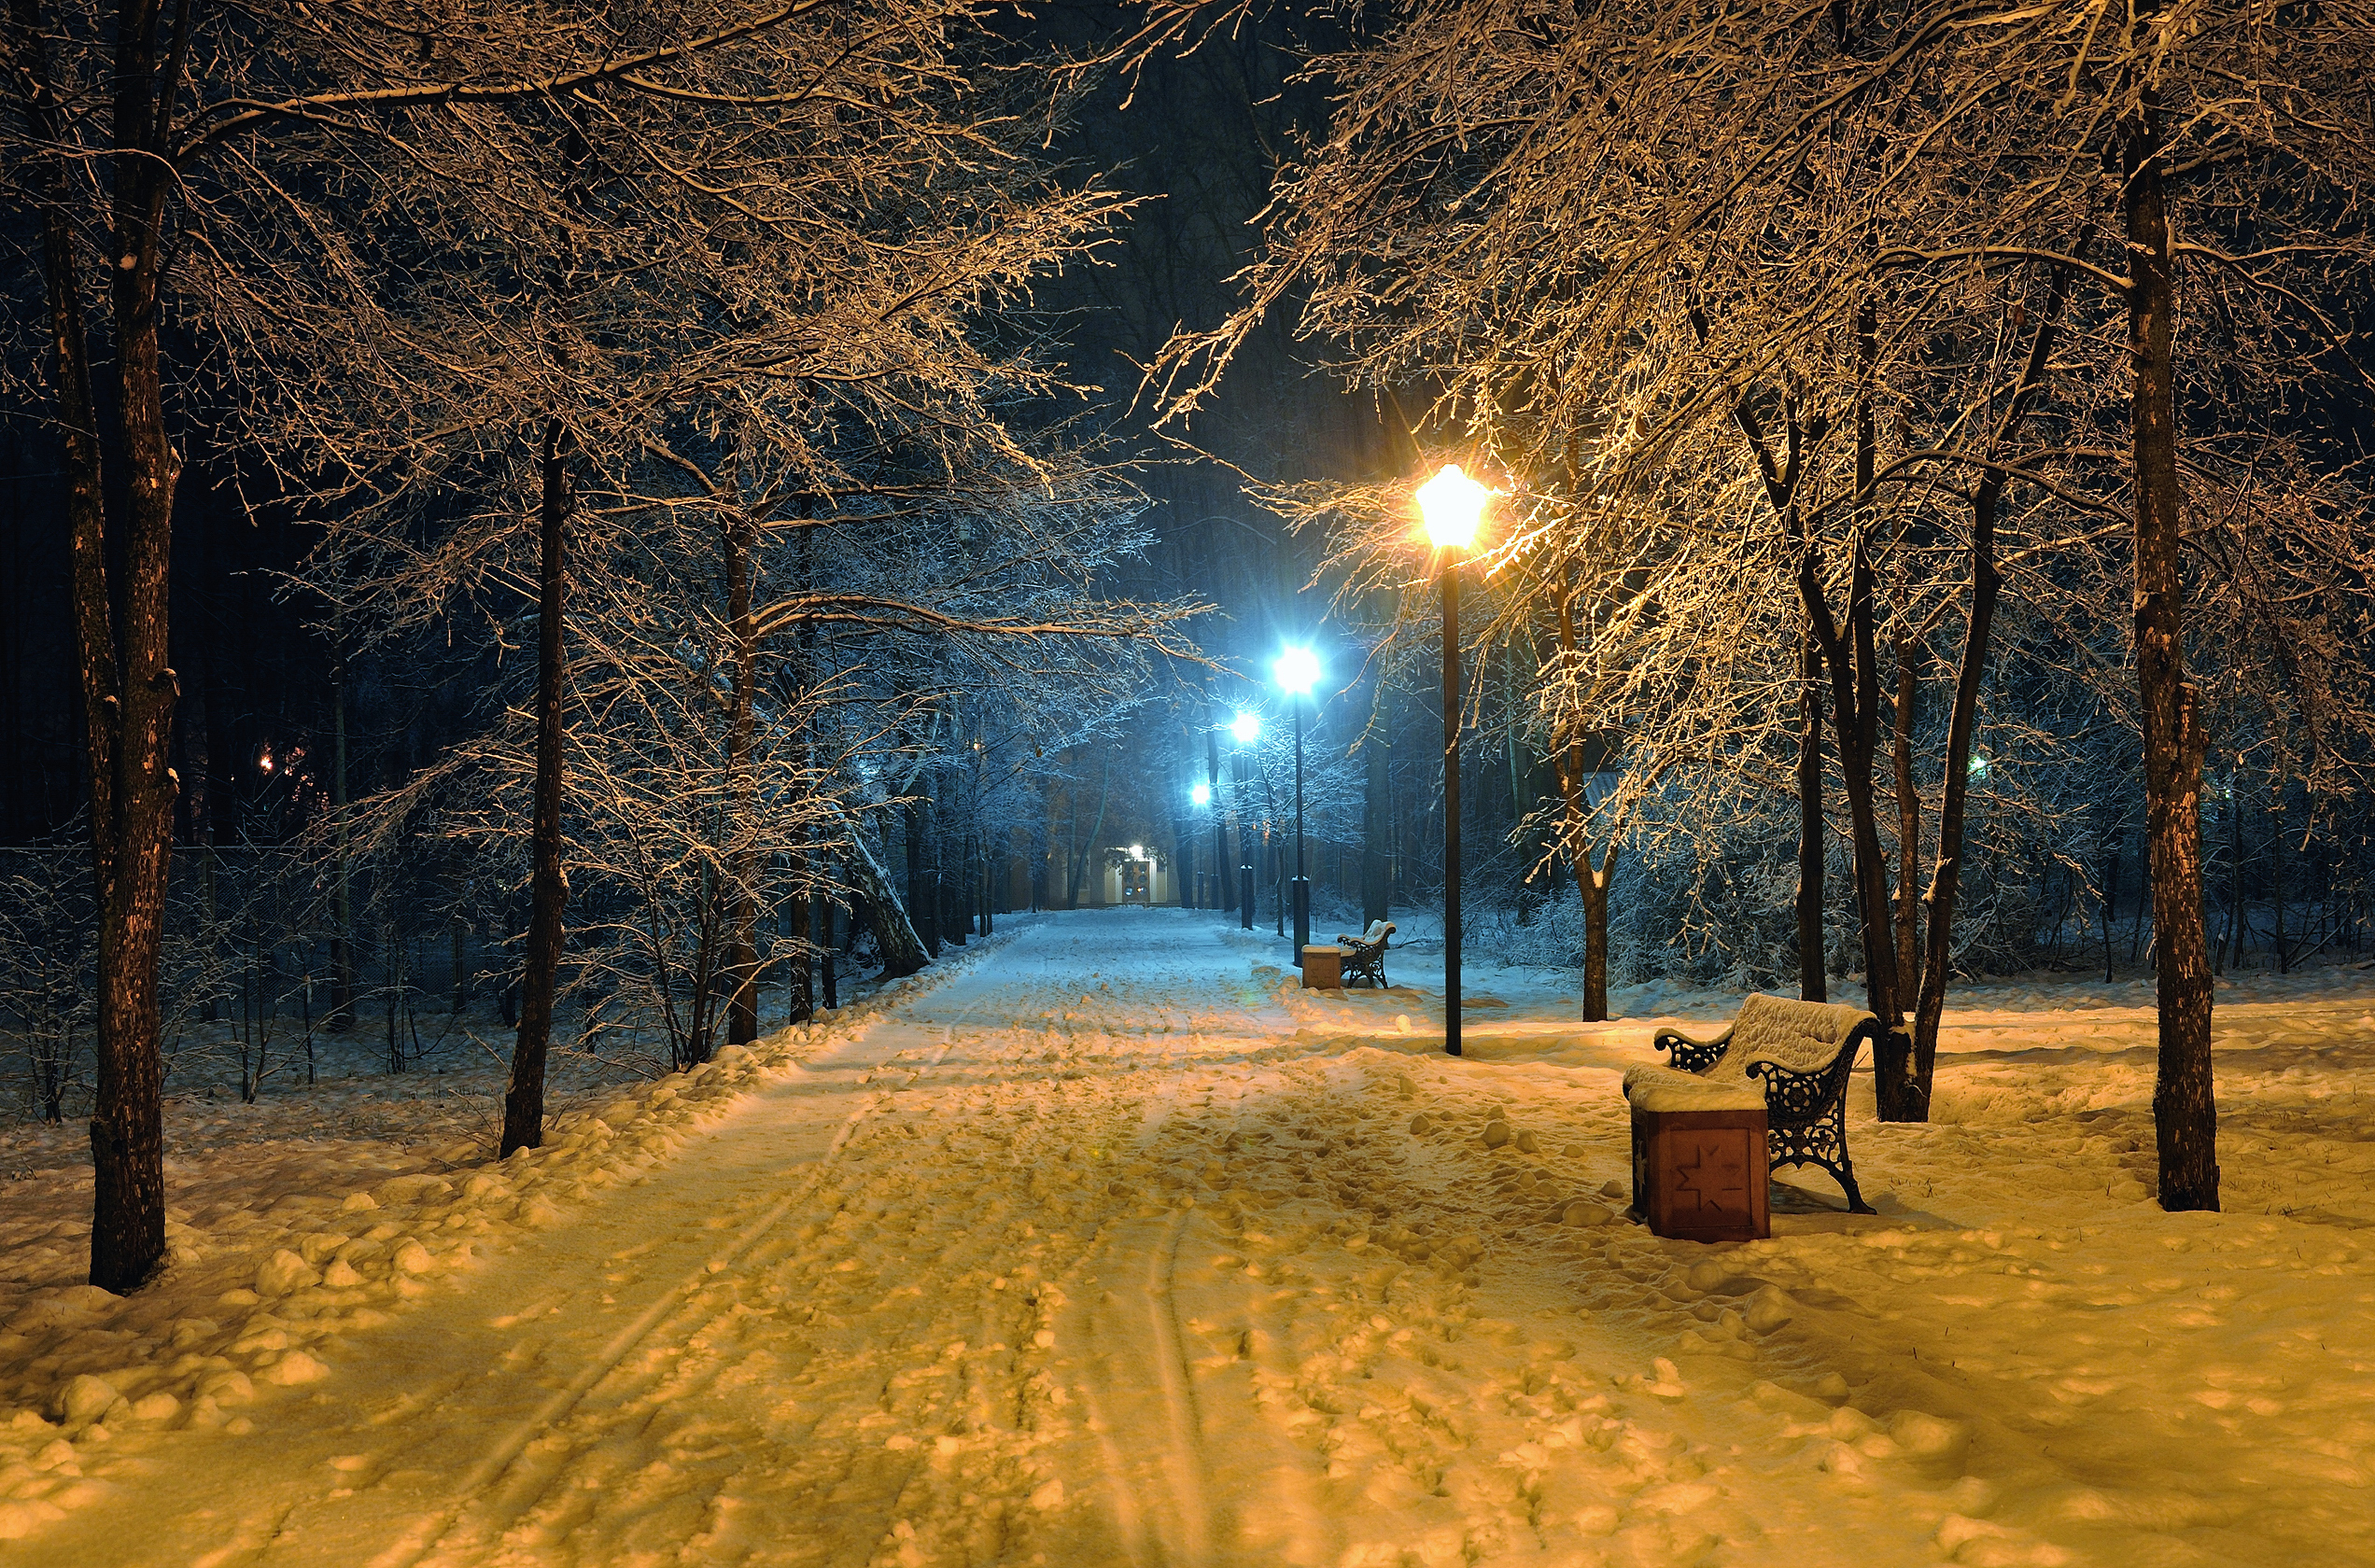 winter street at night 4k ultra hd wallpaper and background image